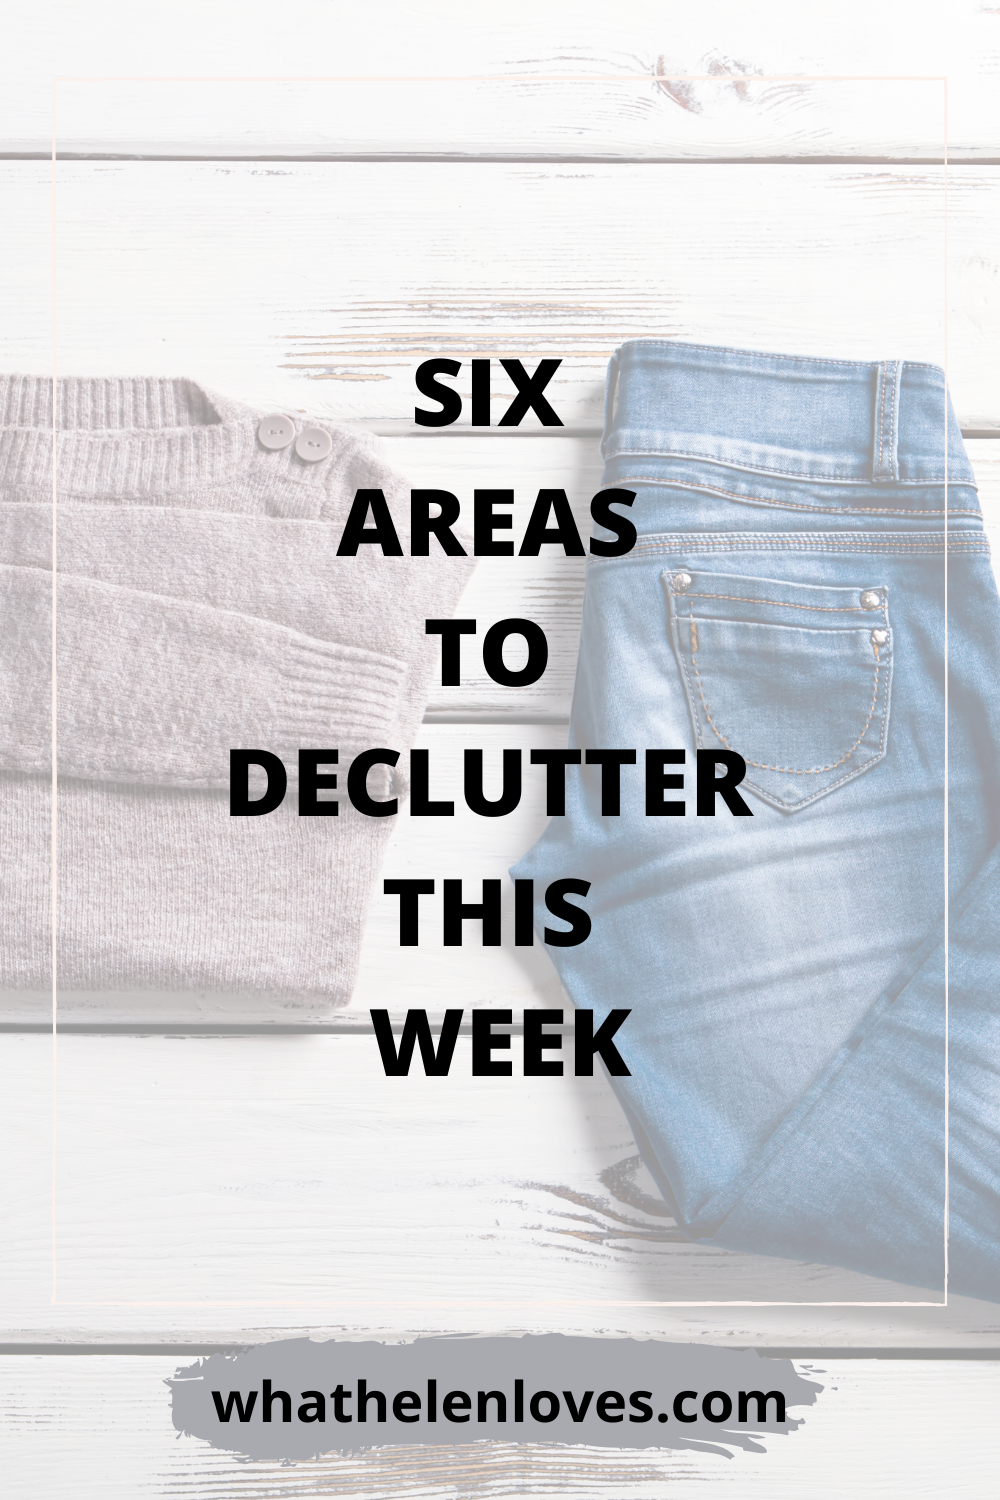 Pinterest pin for a blog post about six areas to declutter this week.